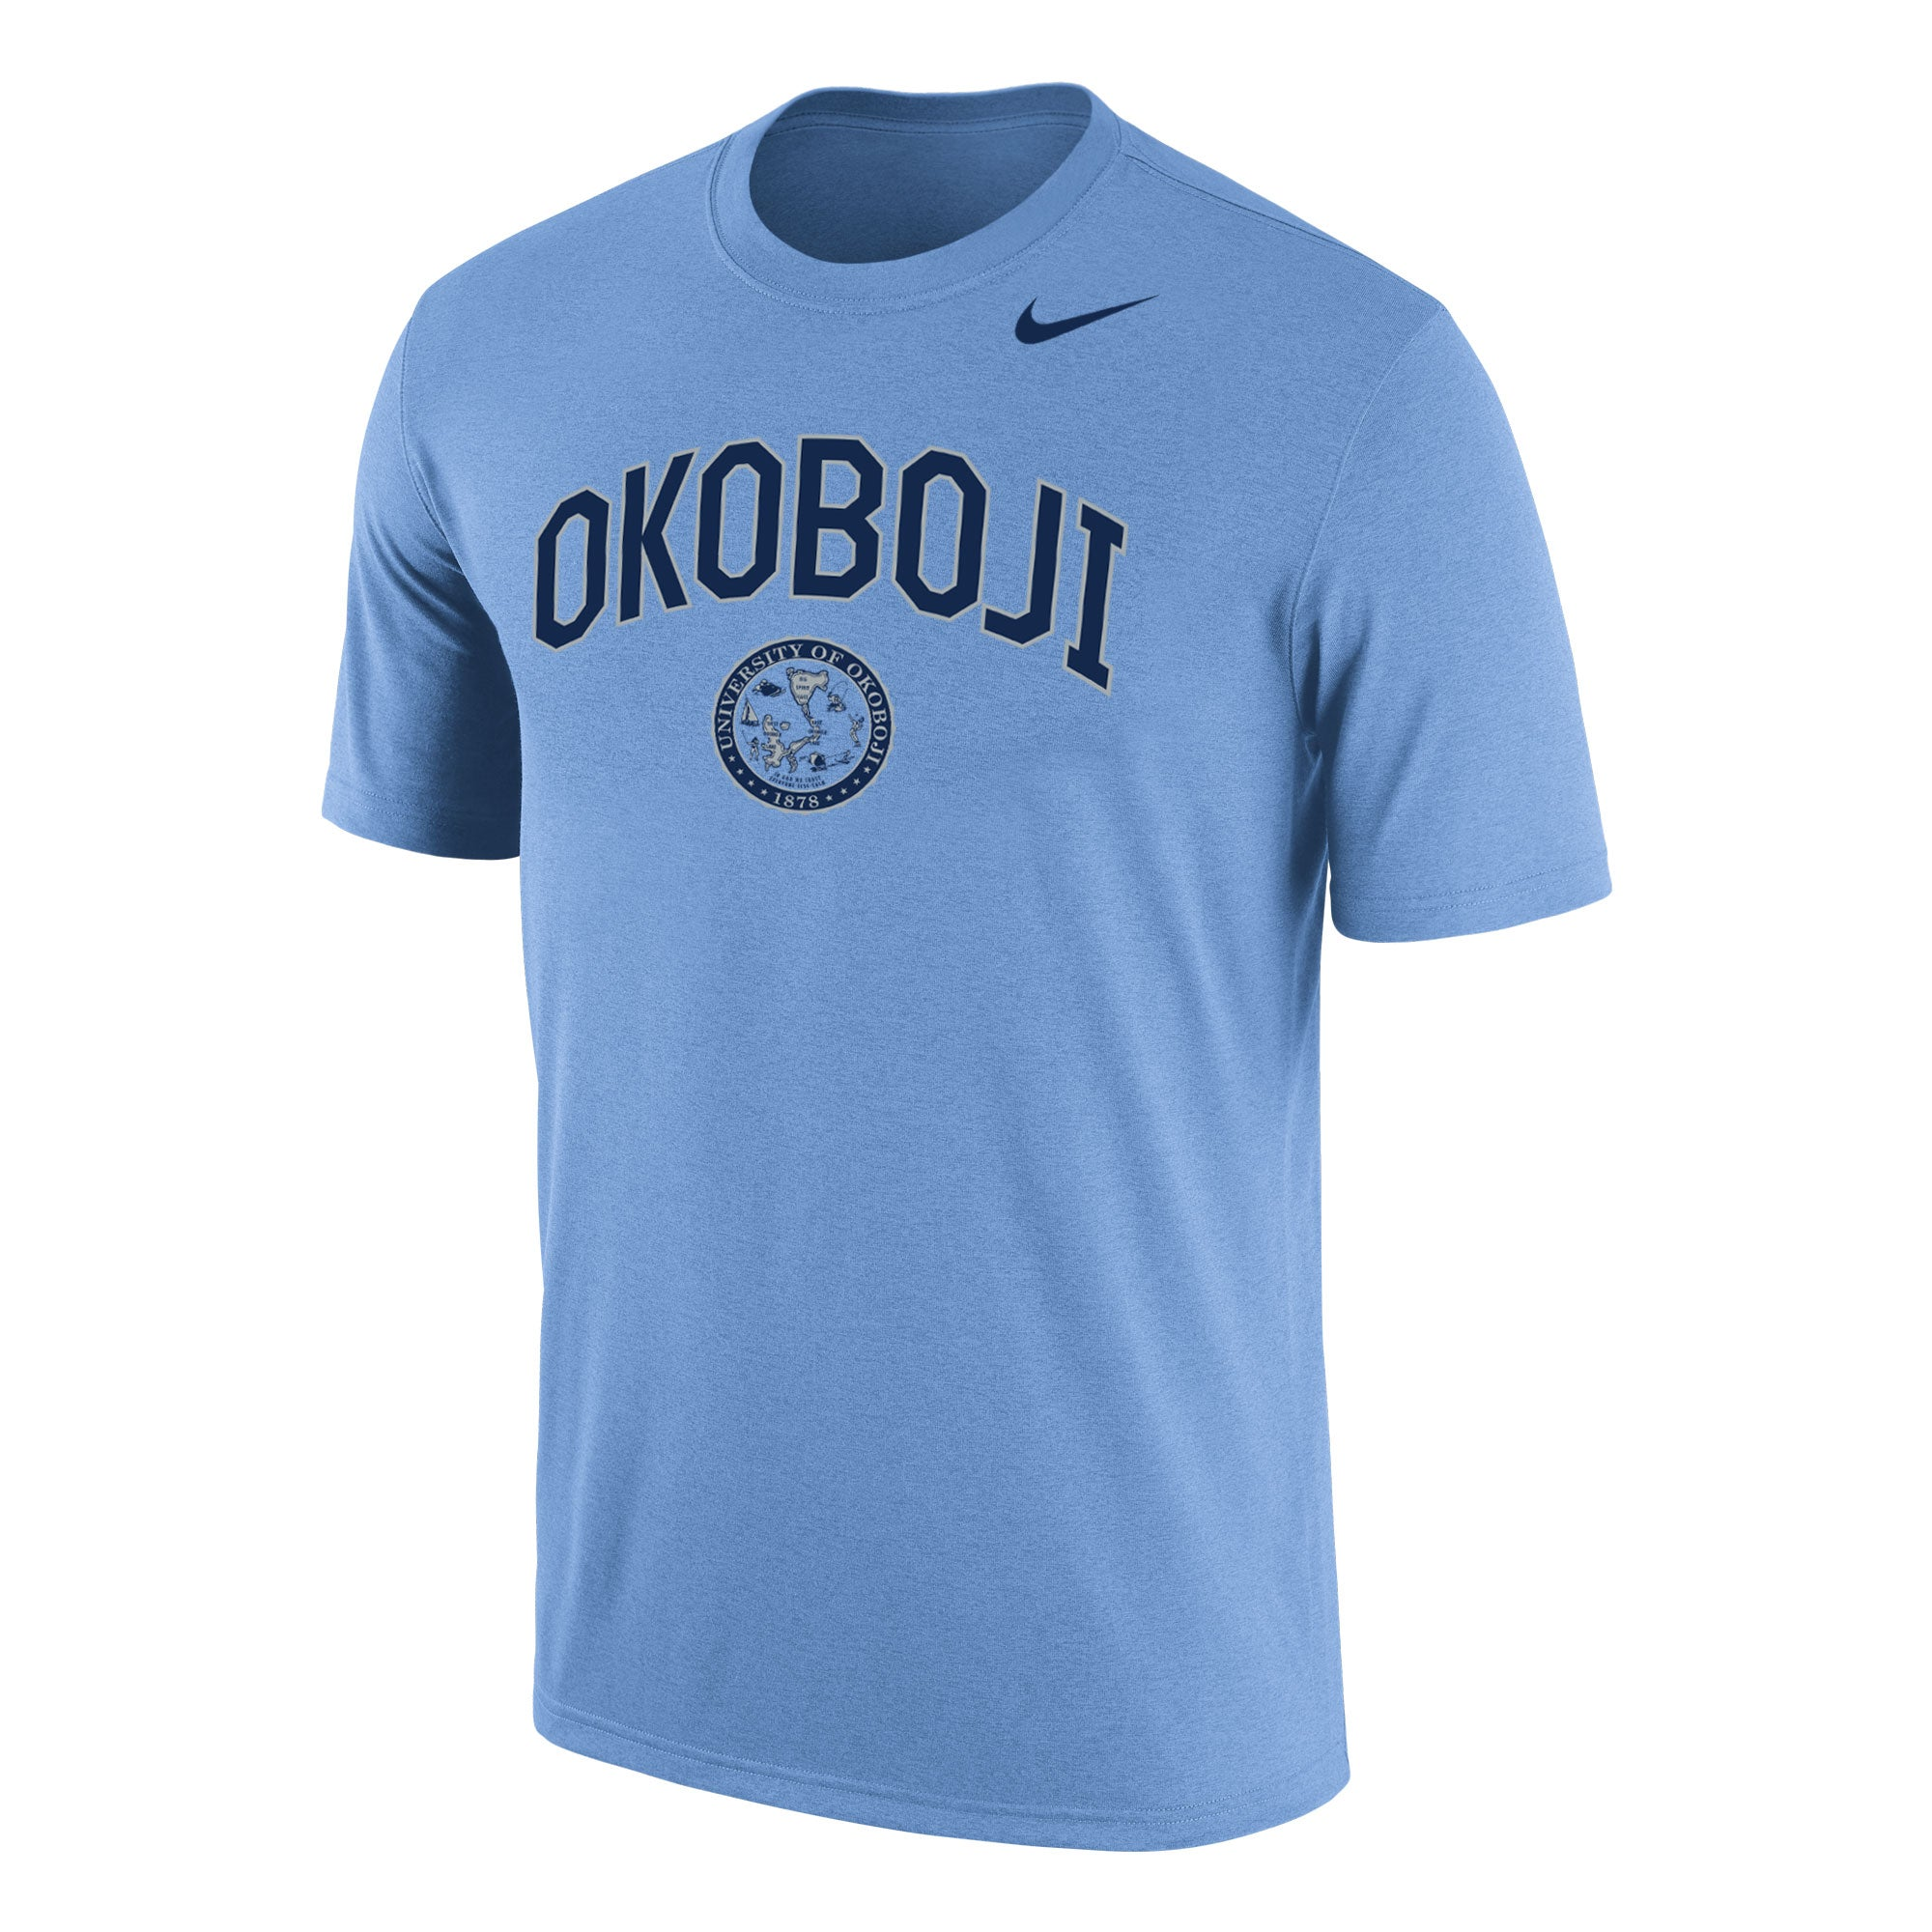 Men's Nike Dri-Fit Cotton - Valor Blue